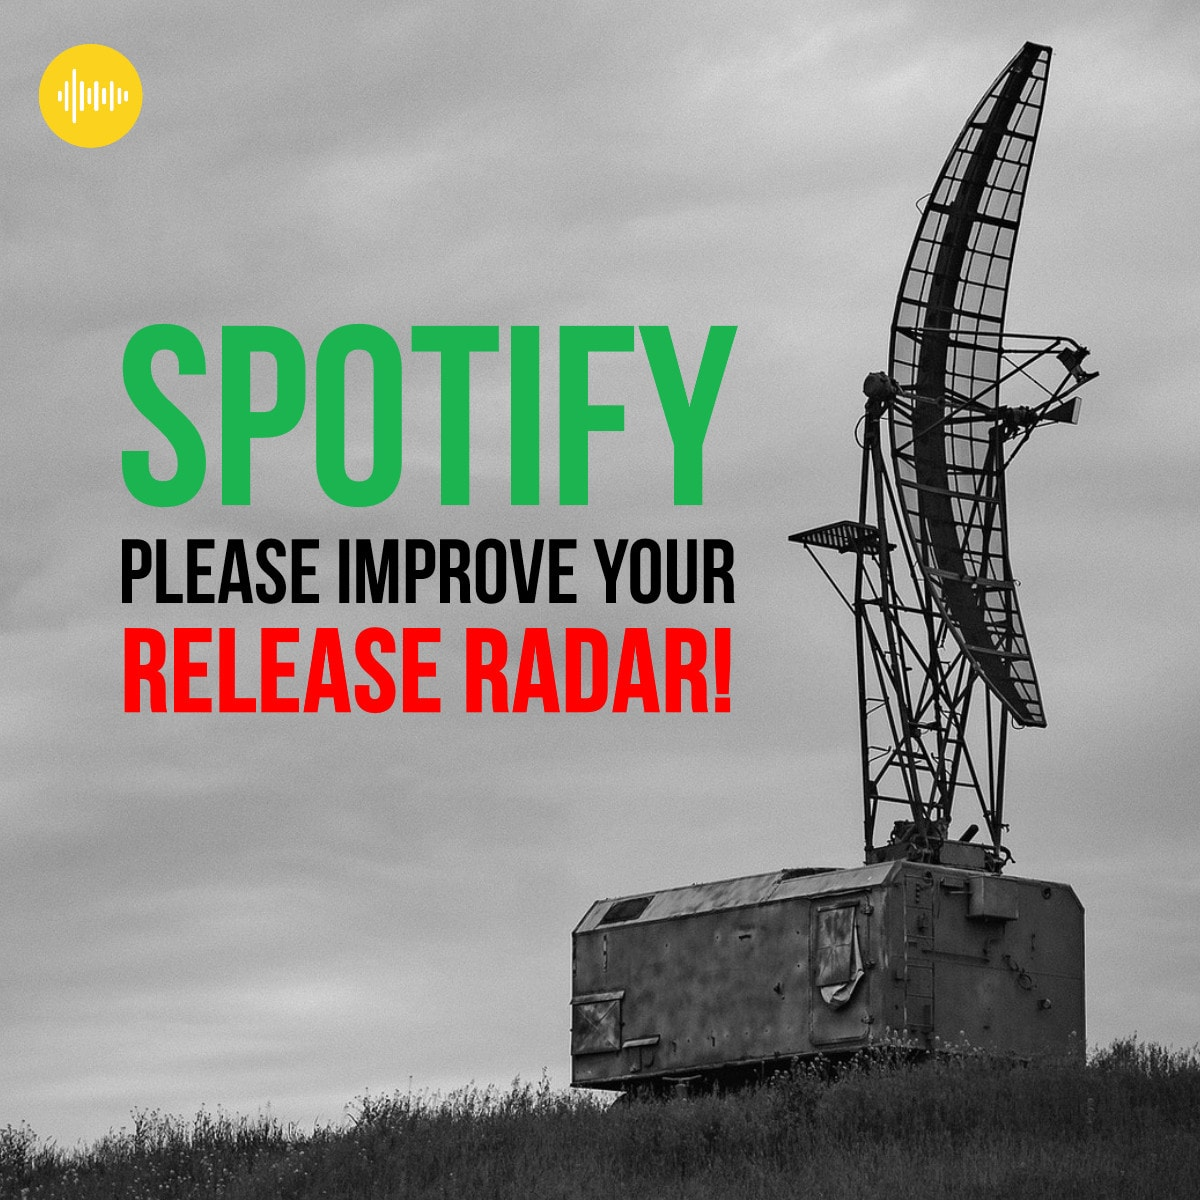 Spotify please improve your Release Radar - Spotify, please improve your Release Radar!